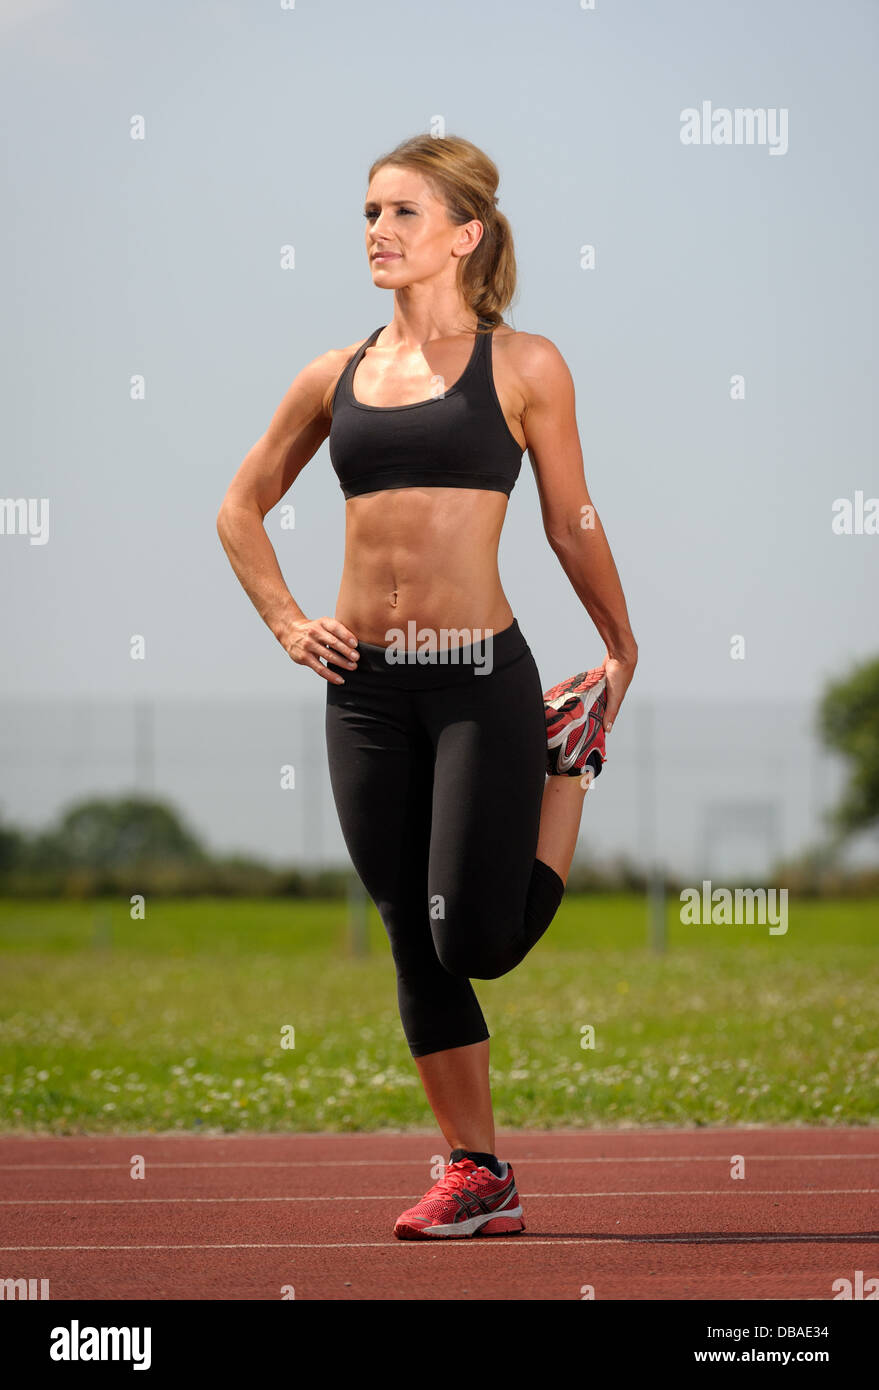 Female stretching legs during fitness program prior to running - Stock Image